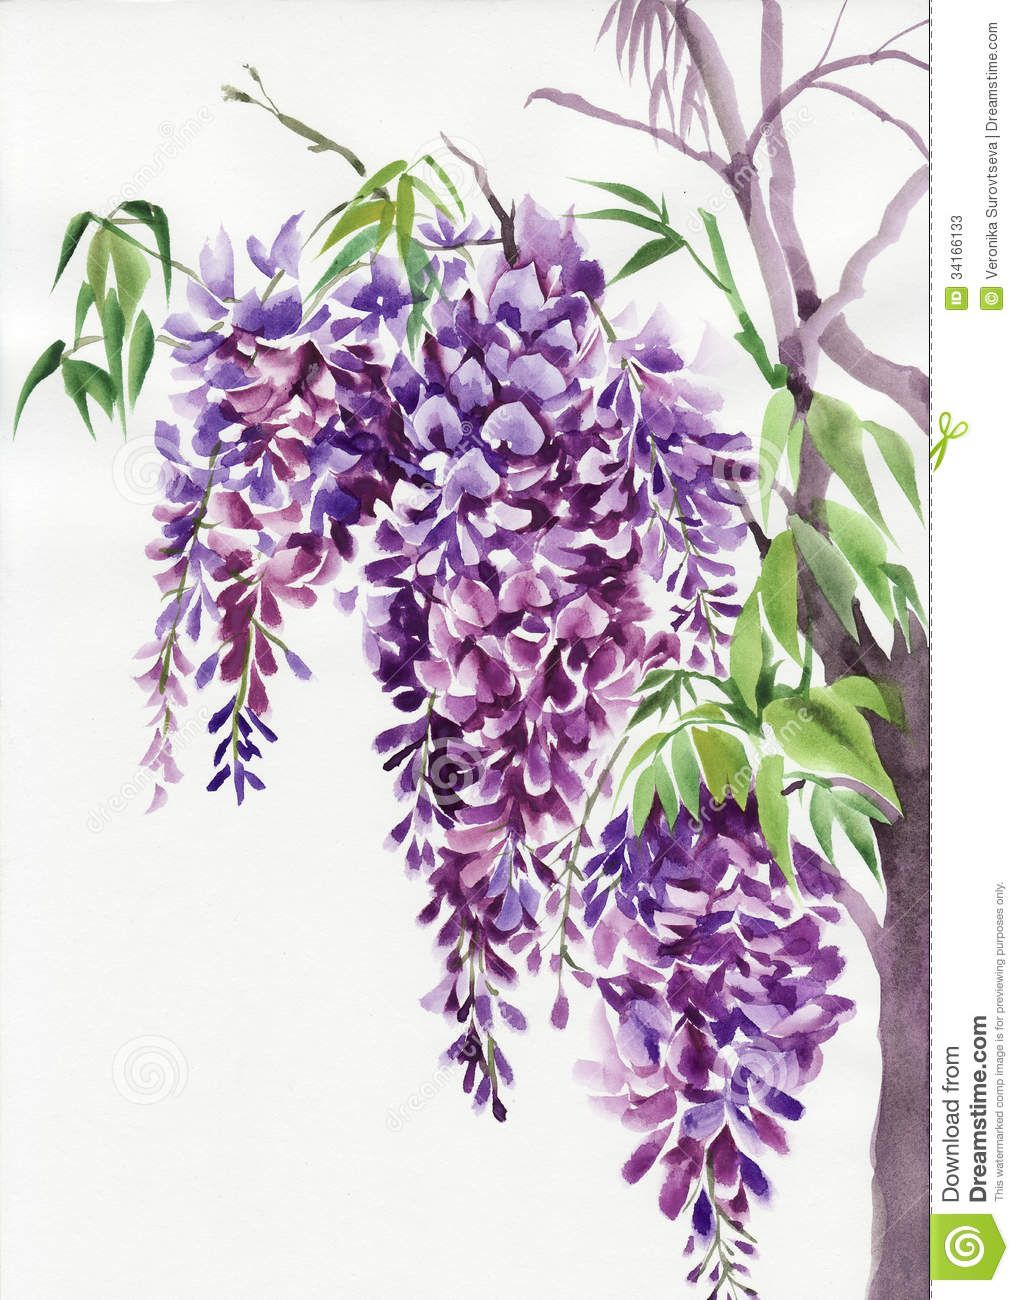 17 Best Images About Wisteria On Pinterest Antiques Wisteria Flower Art Flower Painting Watercolor Flowers